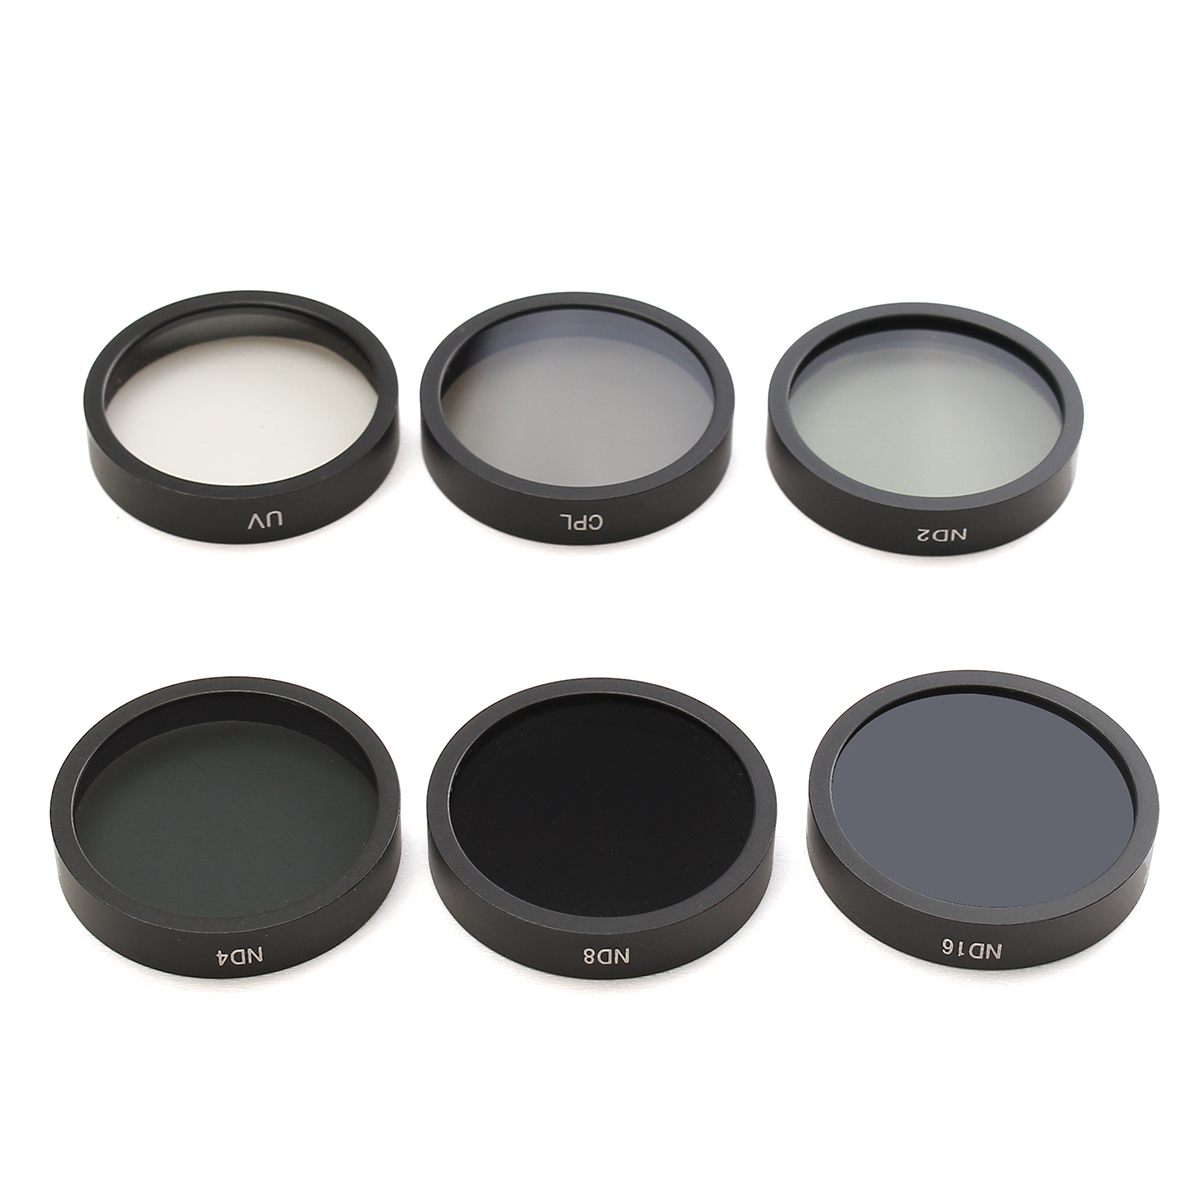 6PCS ND2 ND4 ND8 ND16 CPL UV Camera Lens Filters With Case For DJI Phantom 4/3 HD6PCS ND2 ND4 ND8 ND16 CPL UV Camera Lens Filters With Case For DJI Phantom 4/3 HD